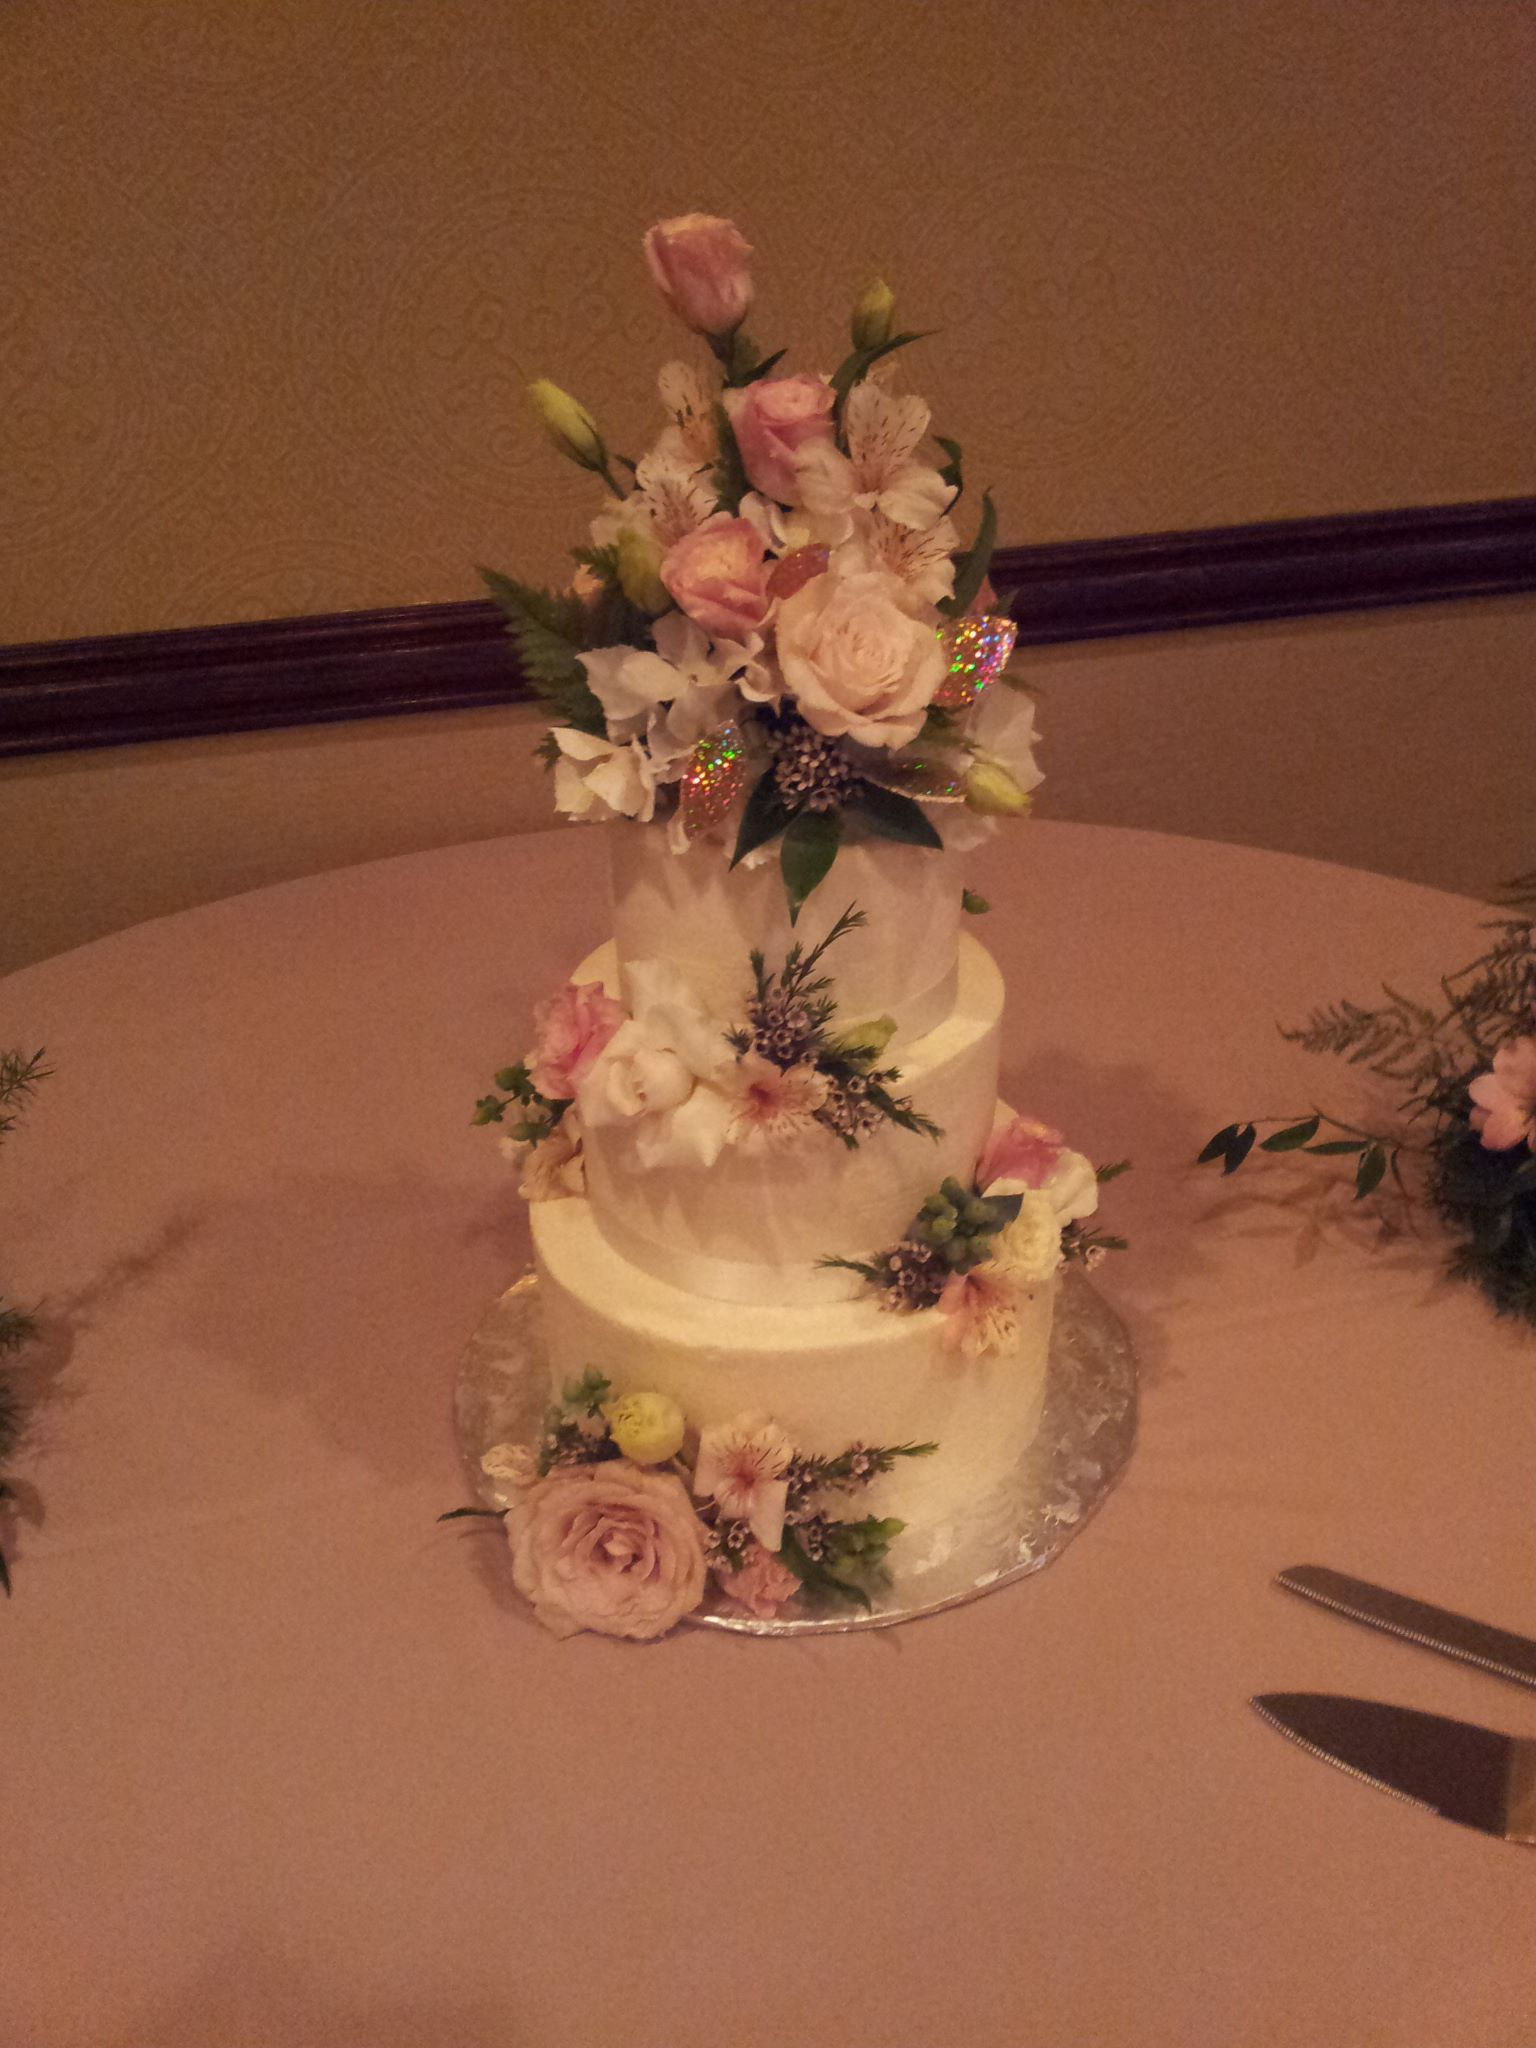 A great cake from a great vendor! http://www.clarencedalecake.com/